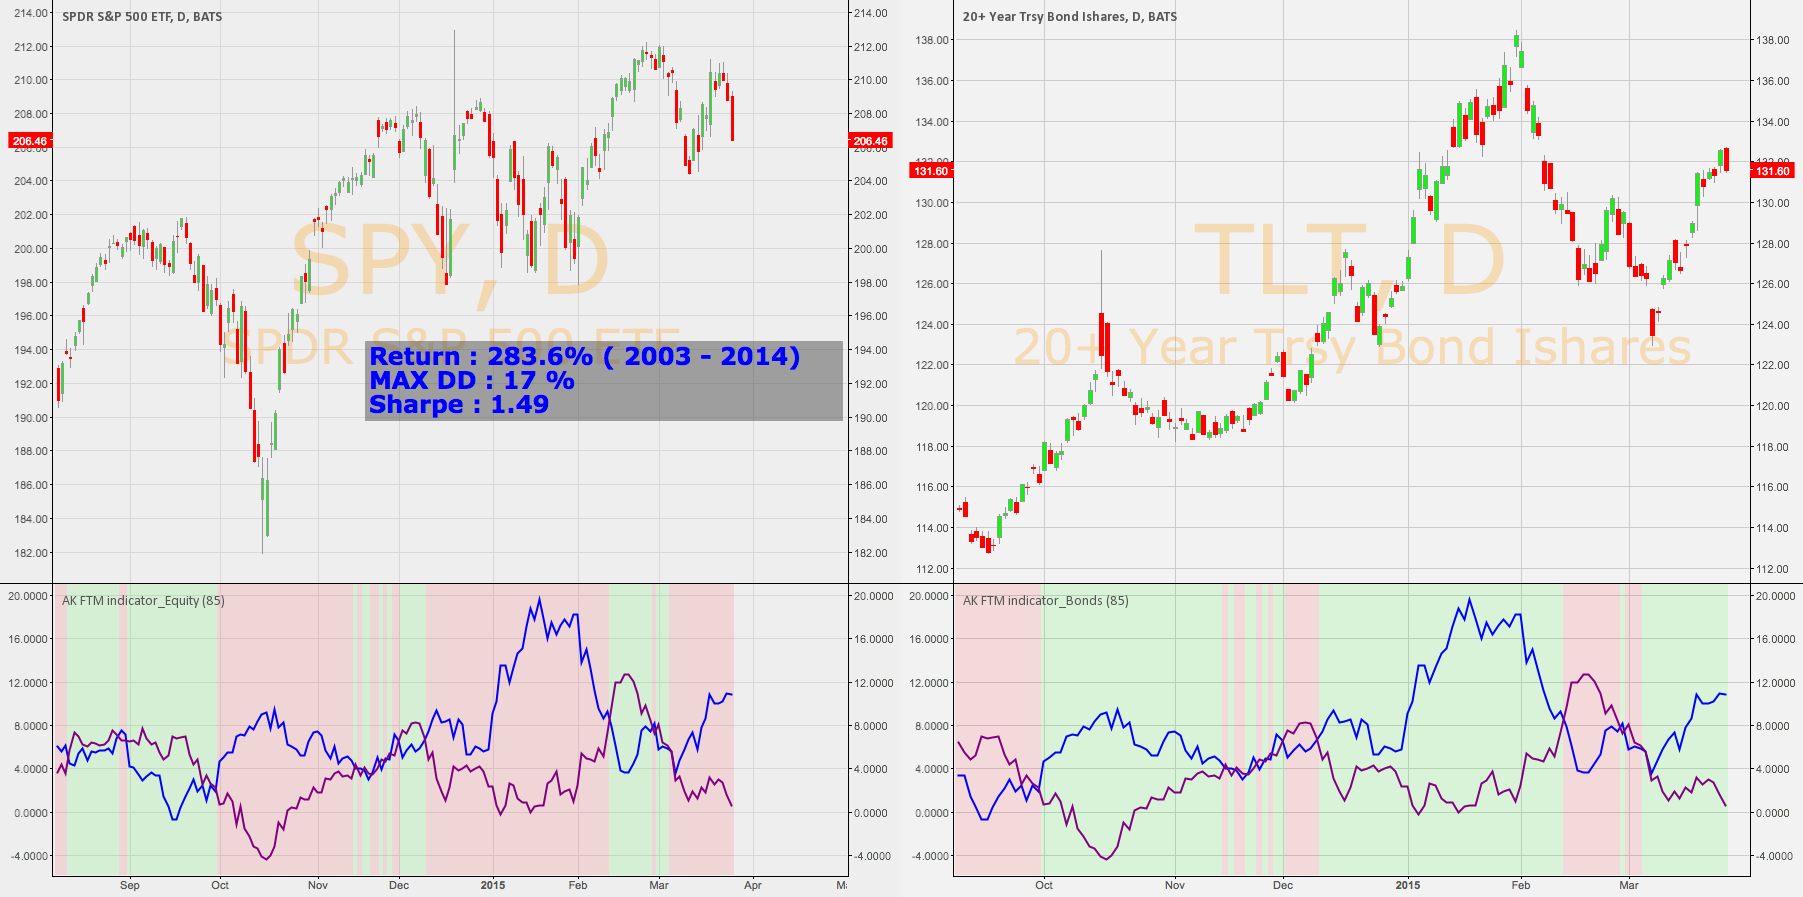 """AK """" Follow the Money """" [FTM] Indicator and trading system"""